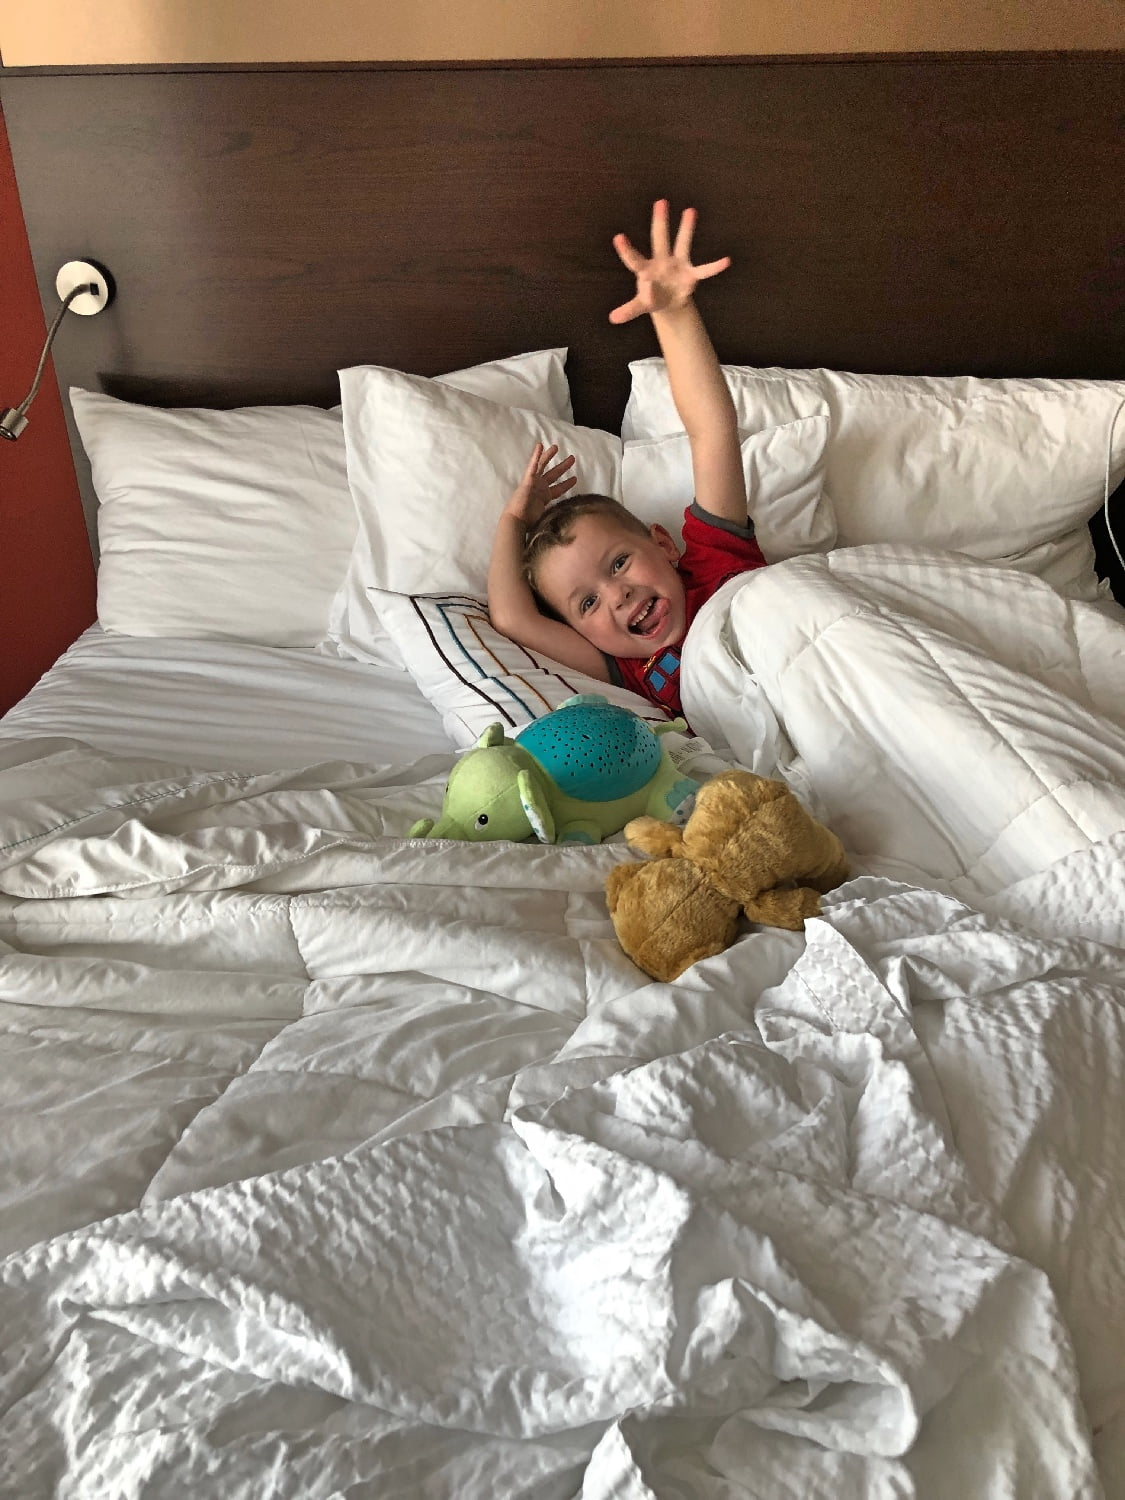 Kid Having Fun in Hotel Bed